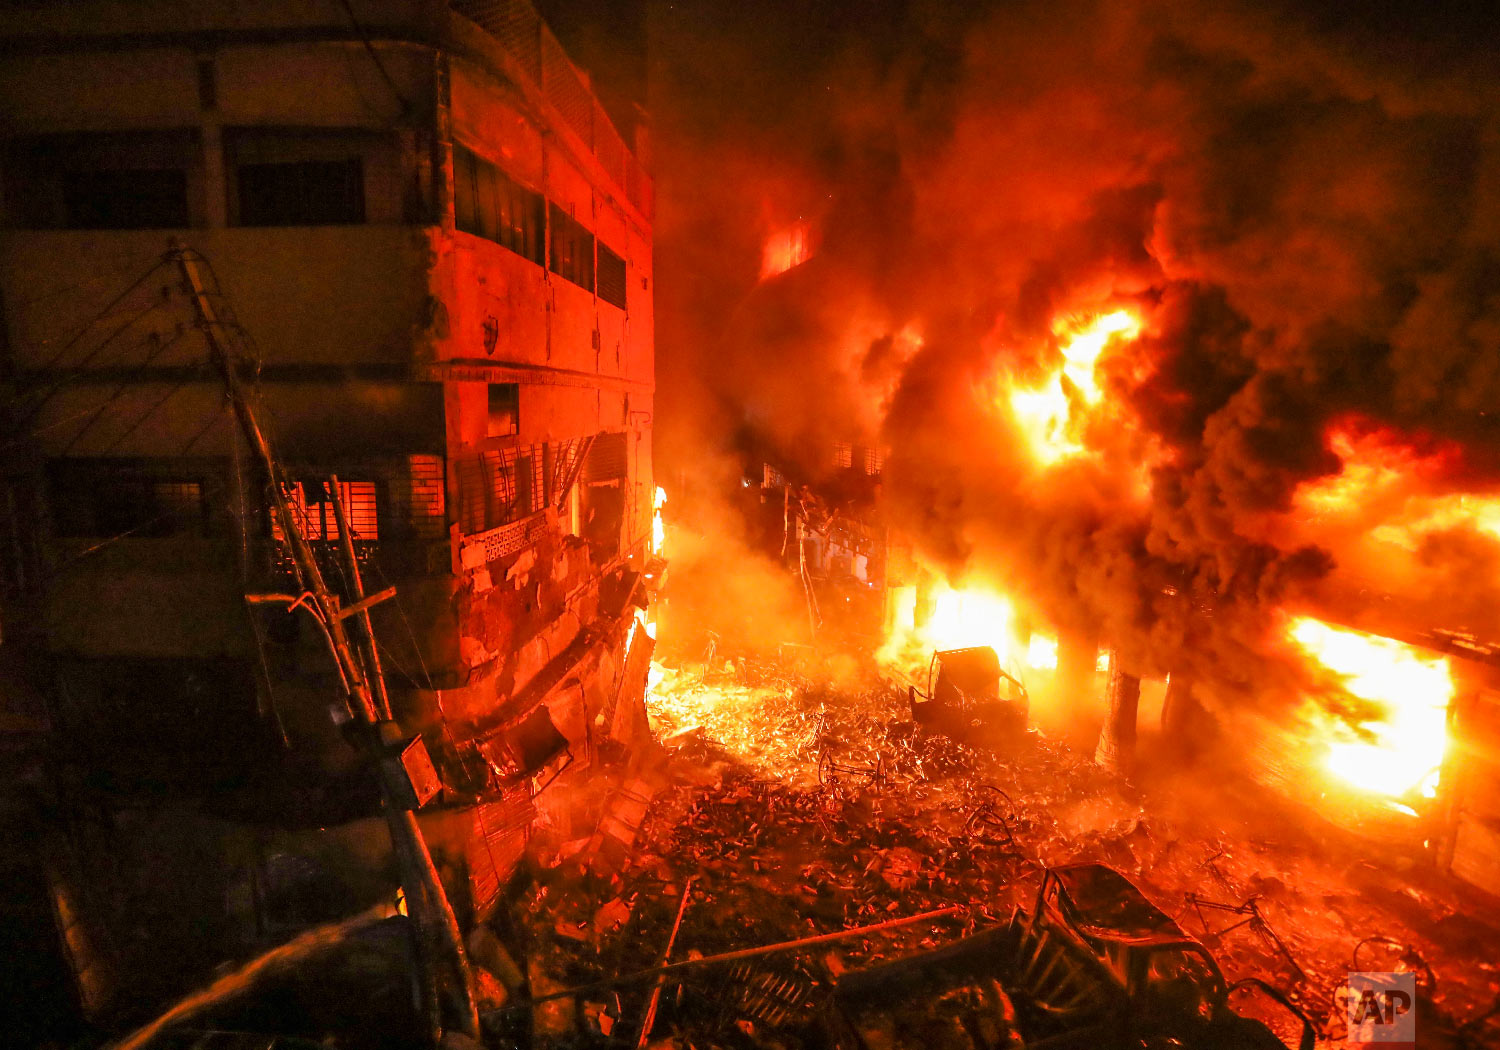 Flames rise from a fire in a densely packed shopping area in Dhaka, Bangladesh, Thursday, Feb. 21, 2019. (AP Photo/Zabed Hasnain Chowdhury)